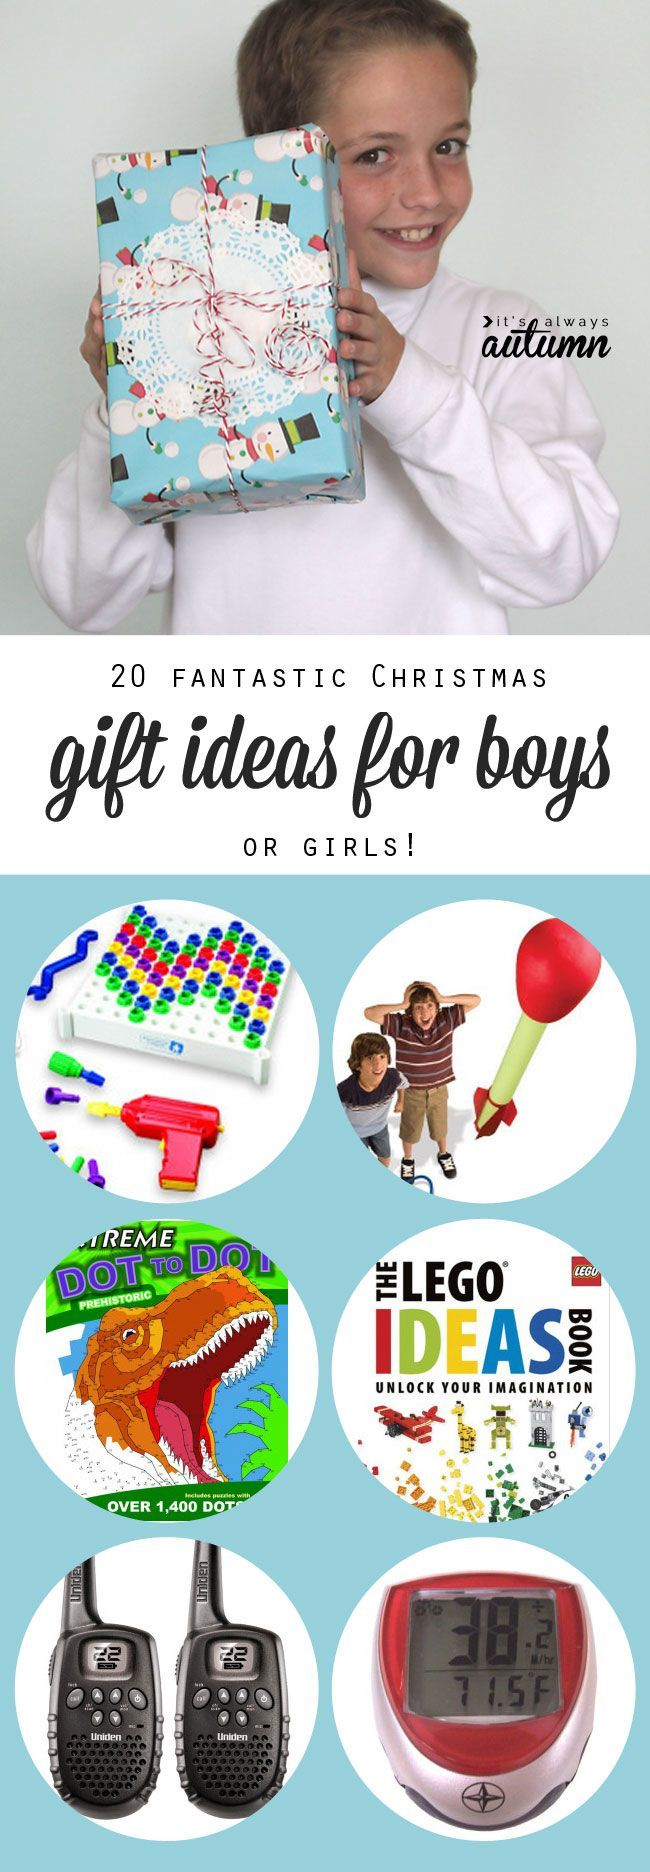 Best 25 best gifts for boys ideas on pinterest birthday Christmas present ideas for 20 year old boyfriend